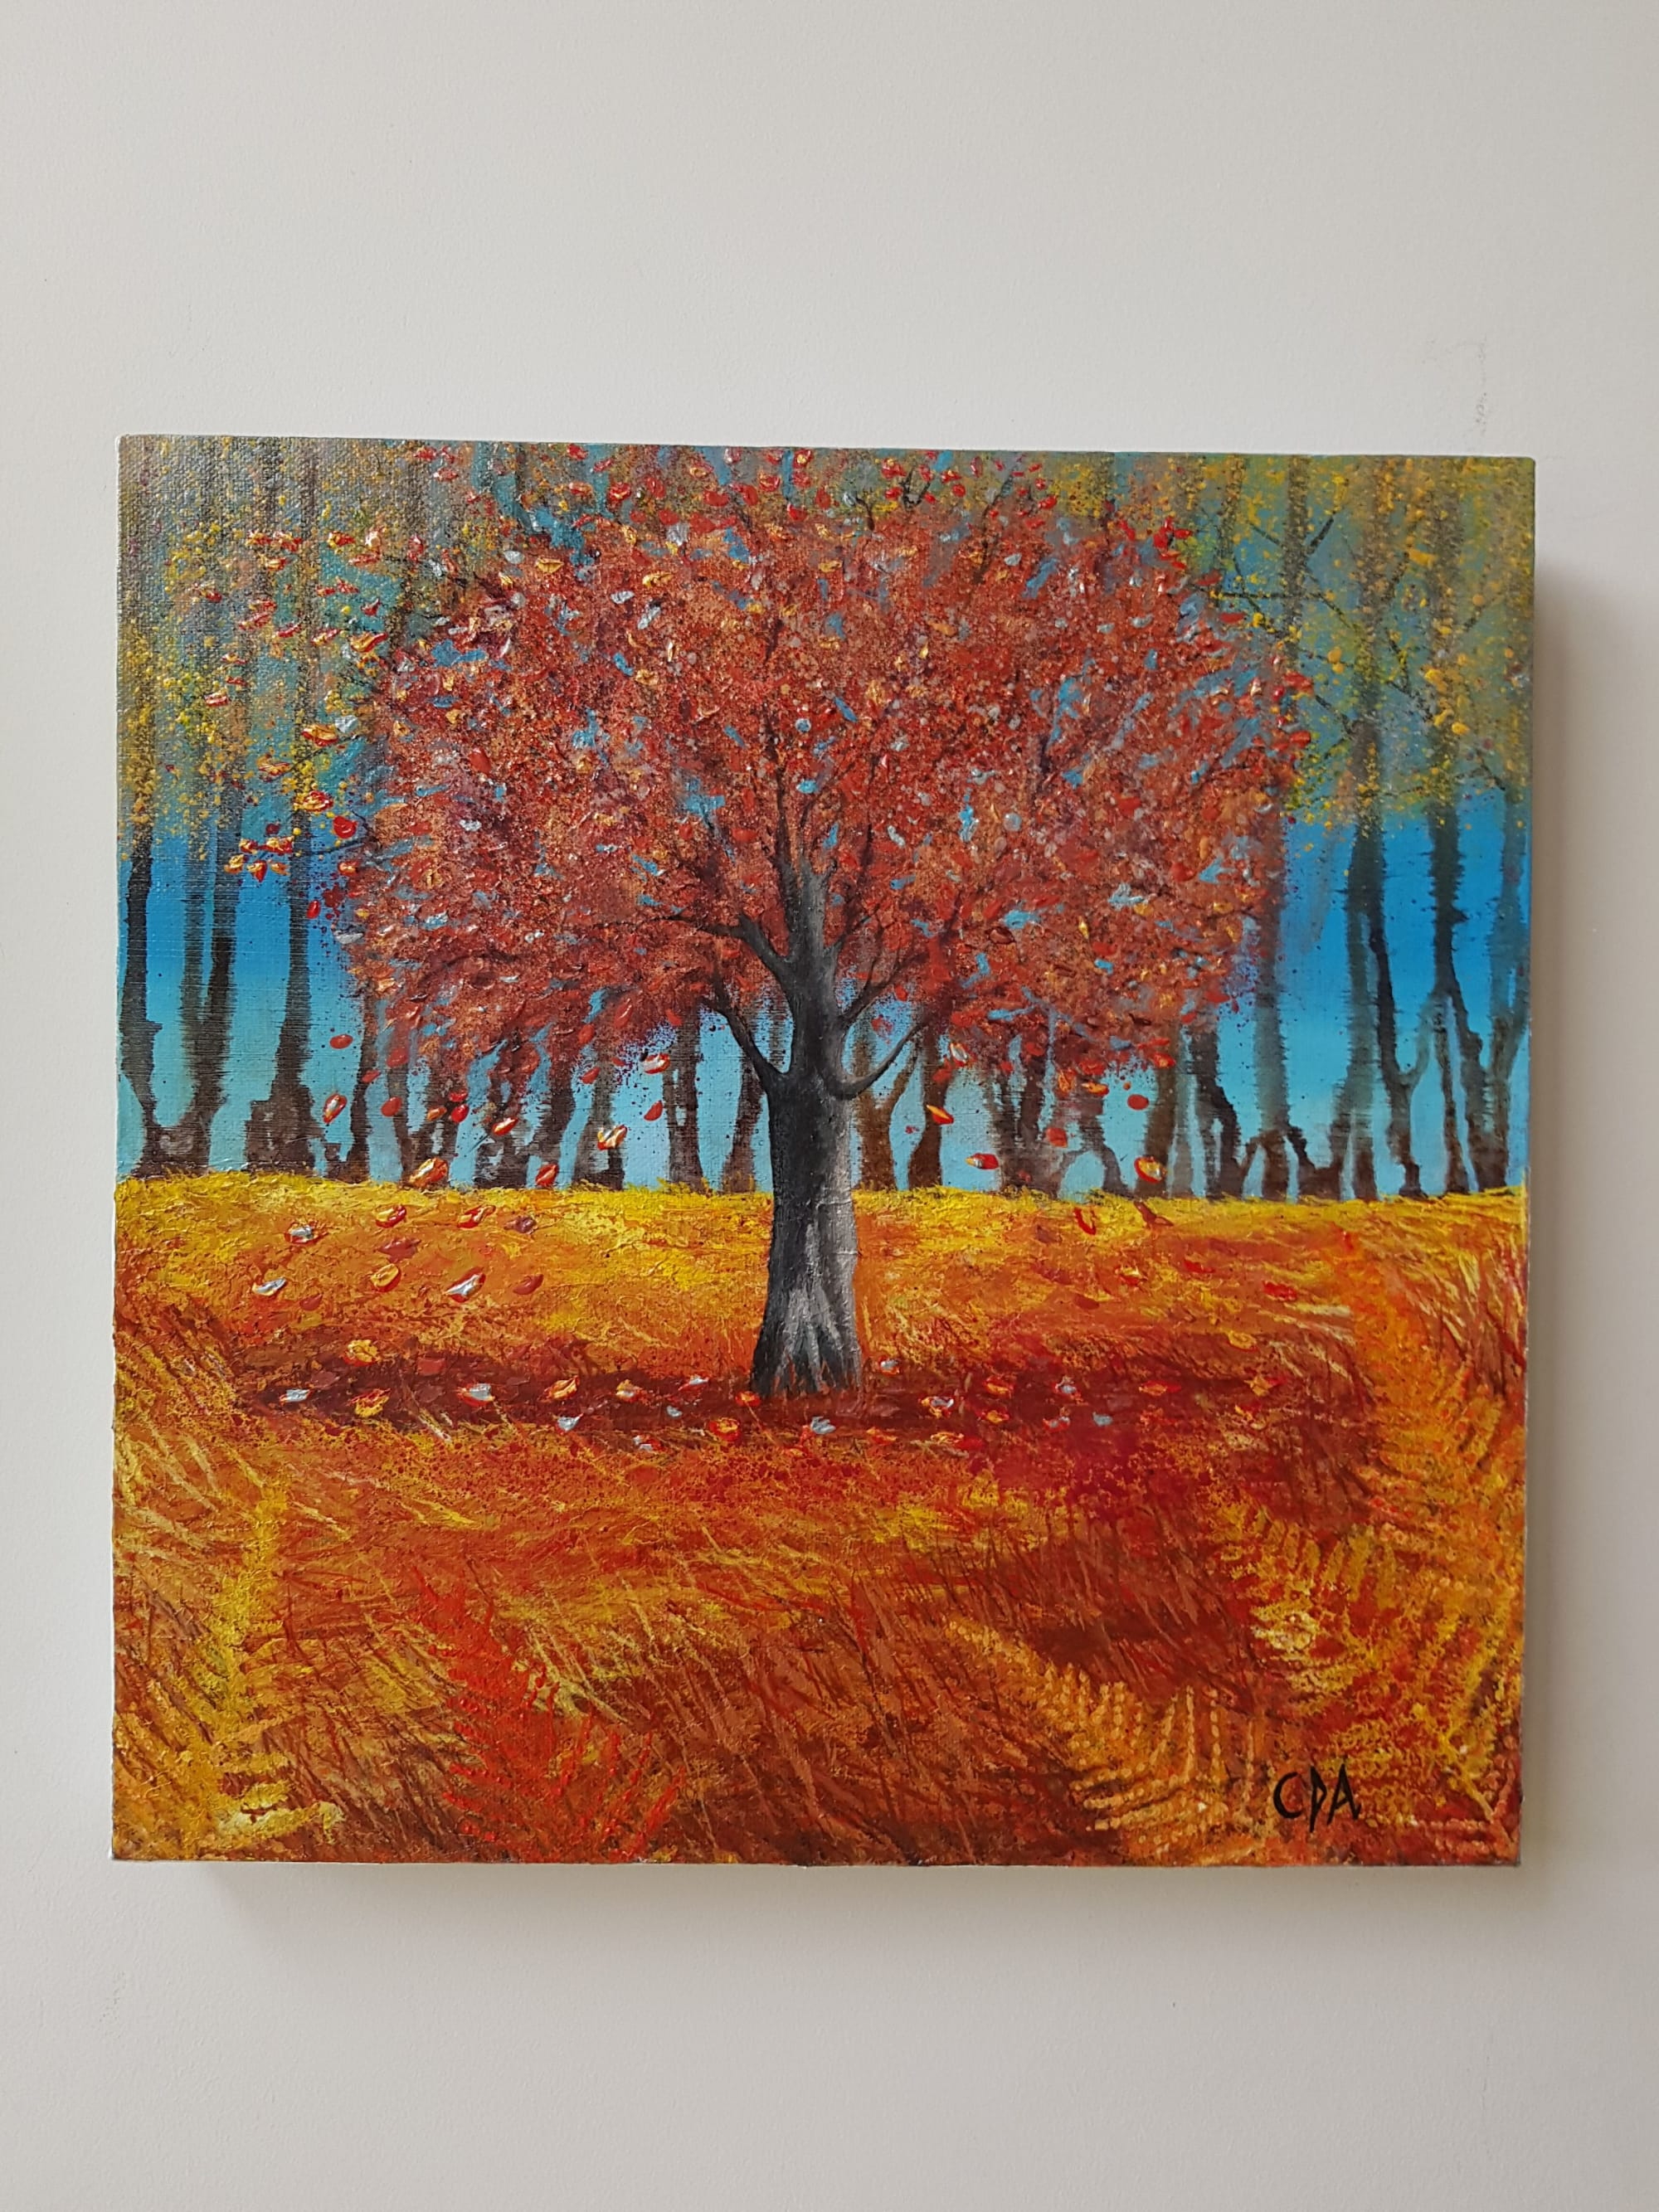 Paintings by Carolina Arbuthnot seen at Elderberry Blacks Café, Knowle - Autumn leaves